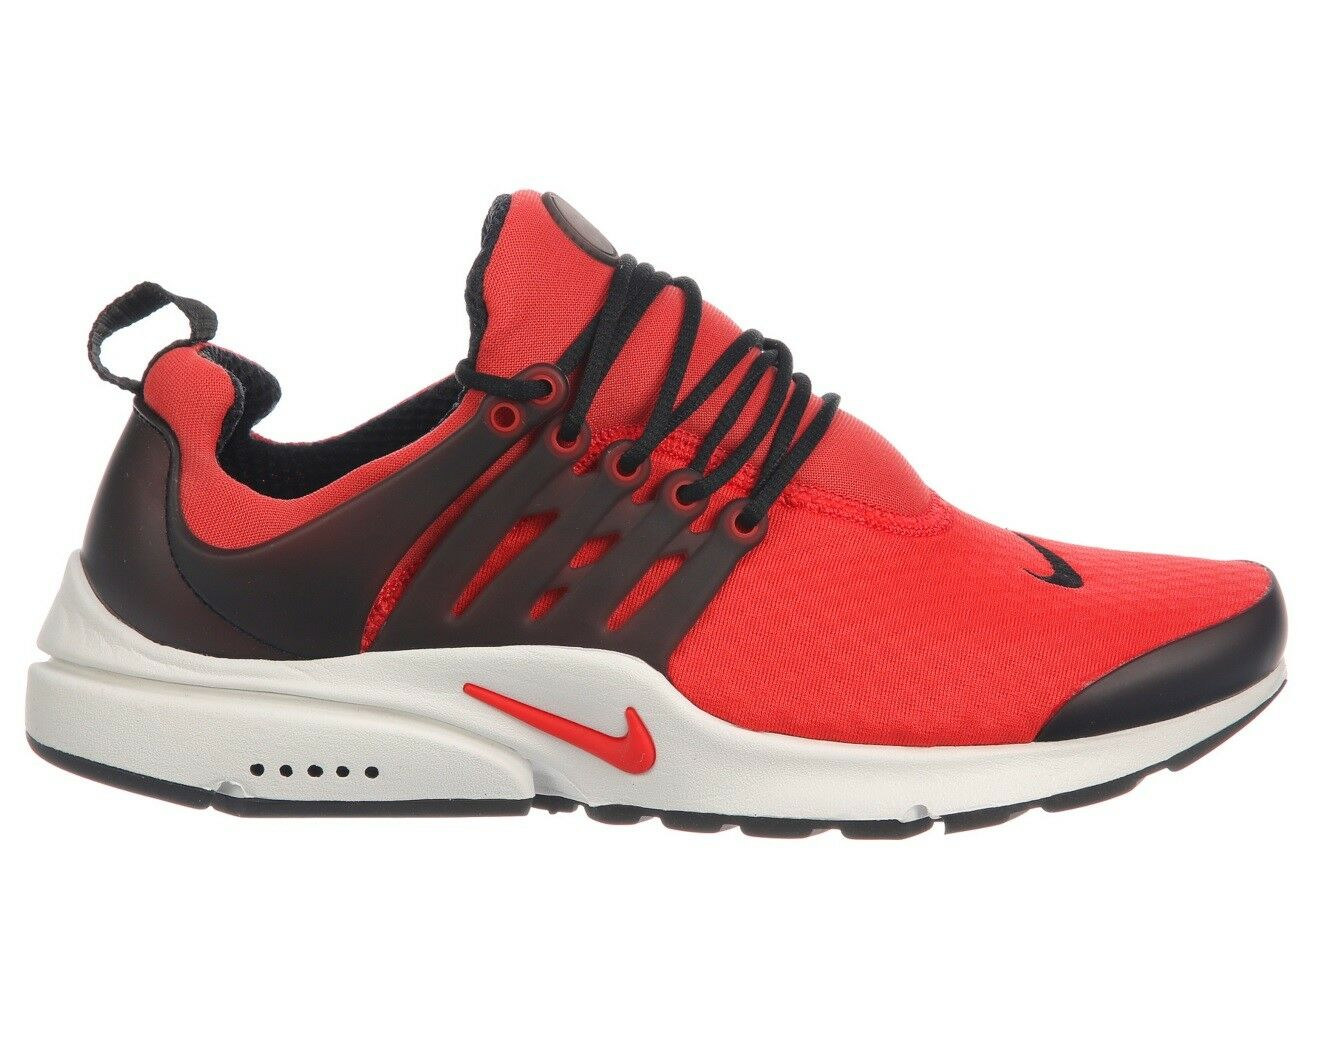 Nike Air Presto Essential Mens 848187-600 Track Red Black Running shoes Size 8